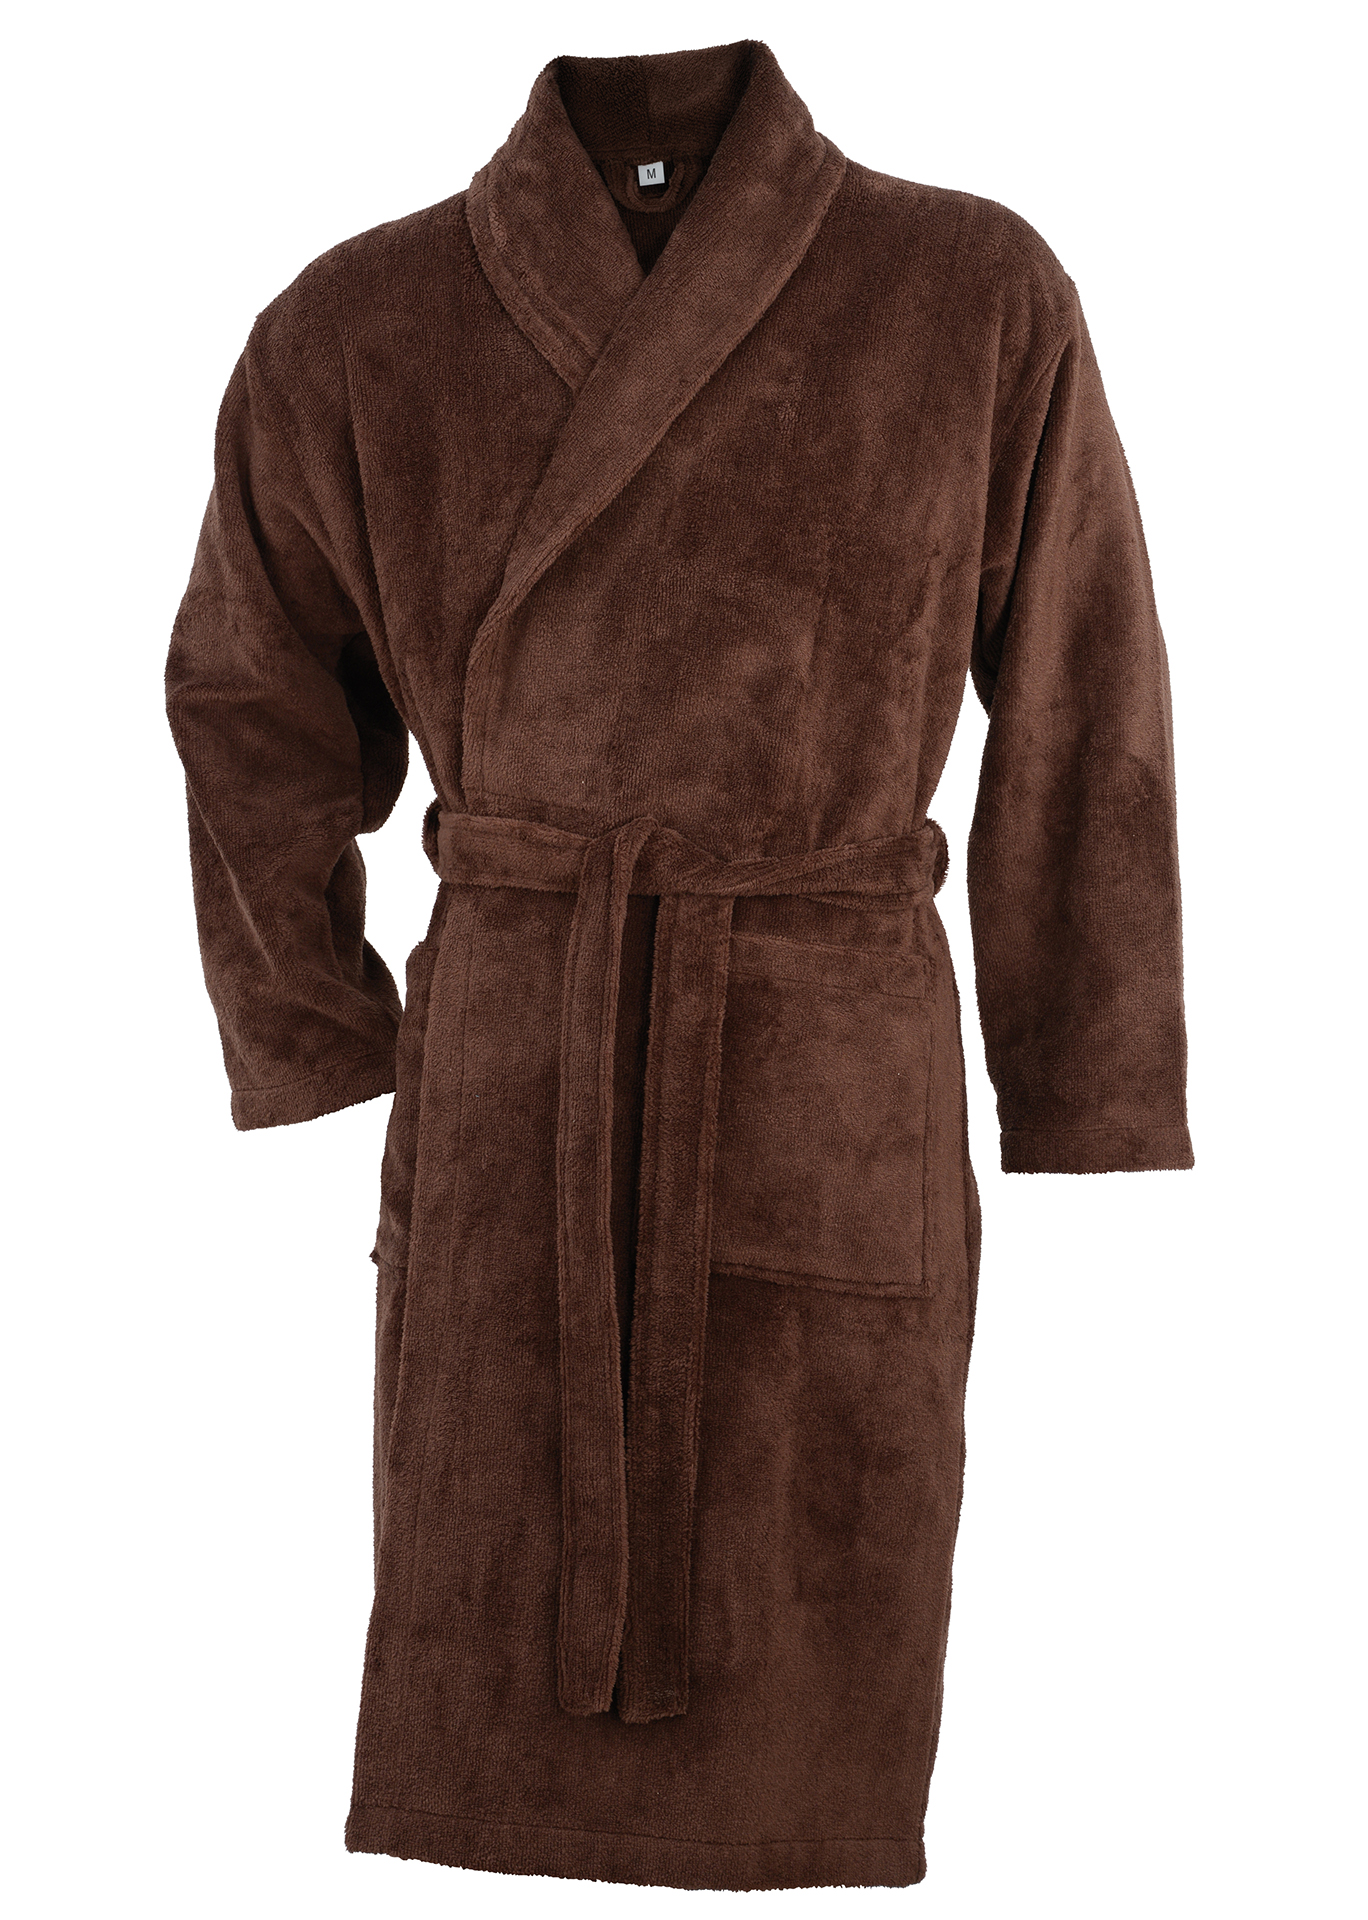 Bath Robes Comfort brown